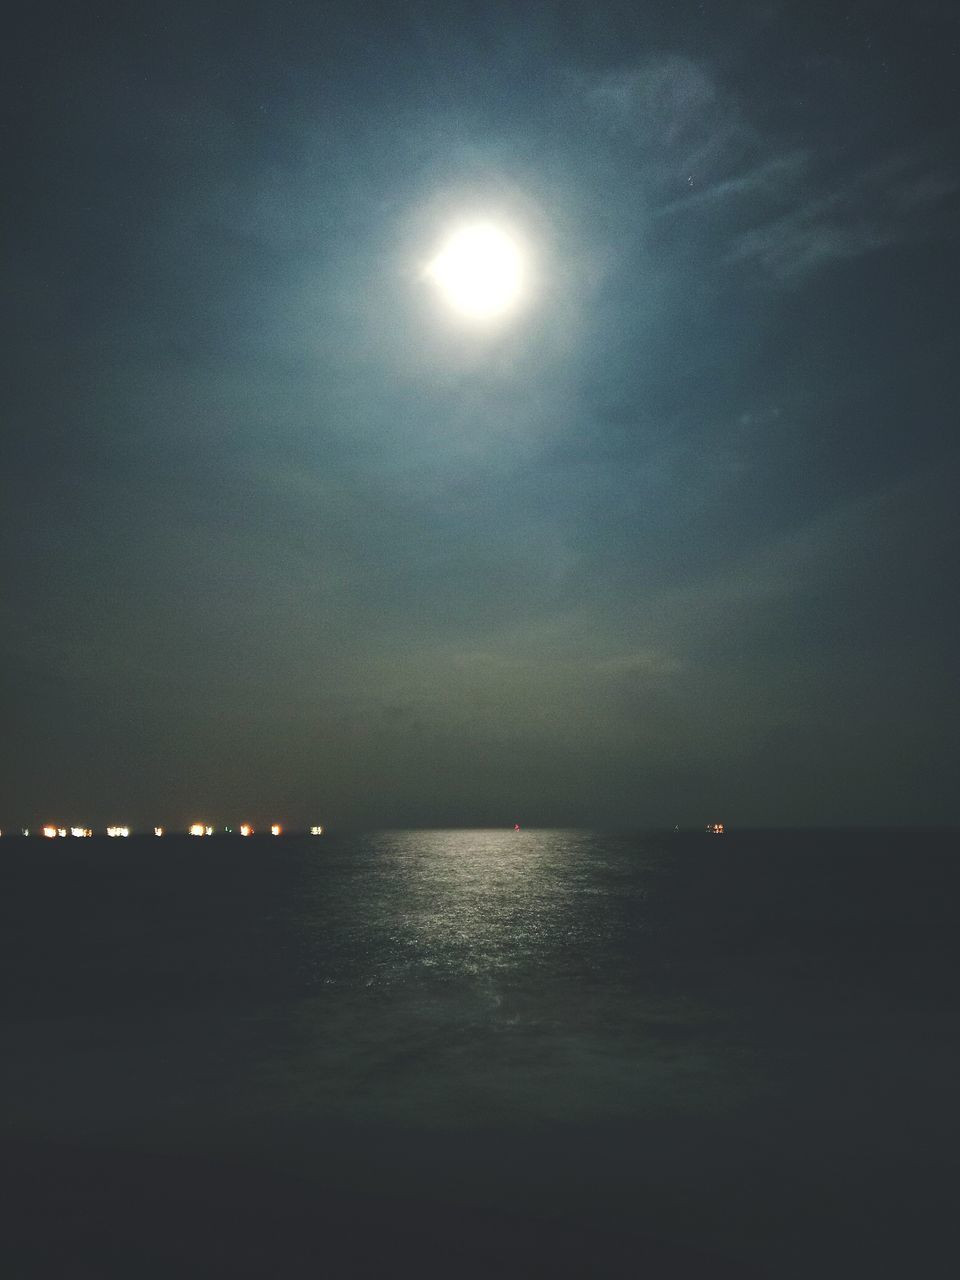 moon, sun, illuminated, water, scenics, sky, beauty in nature, nature, tranquility, no people, outdoors, tranquil scene, moonlight, sea, astronomy